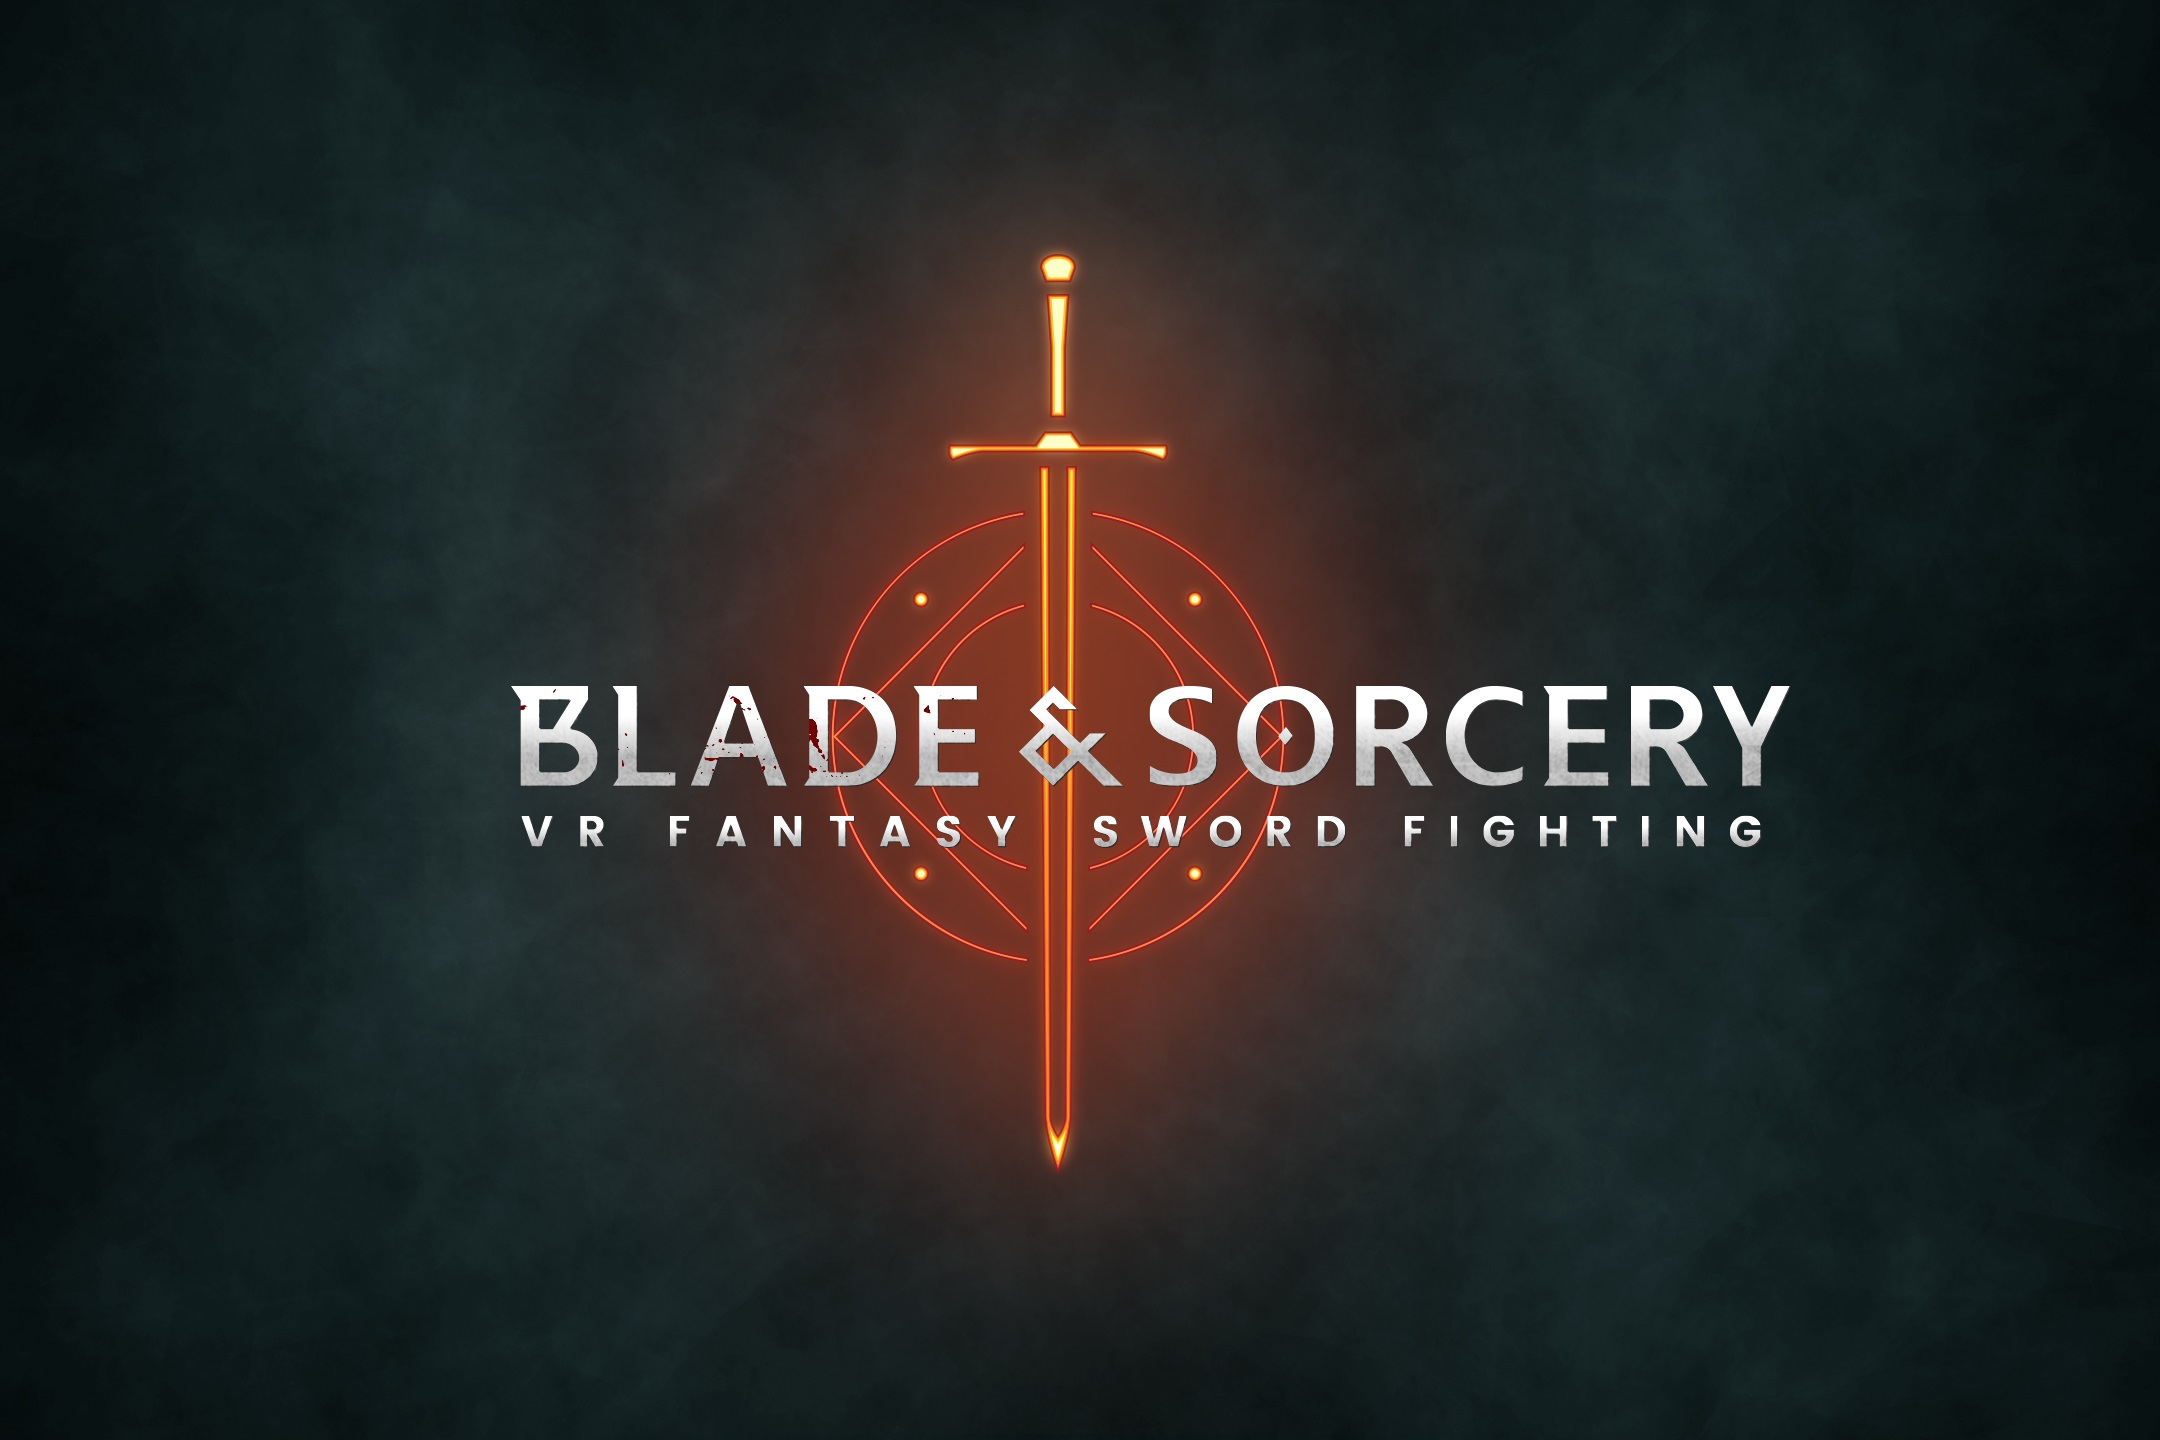 Blade & Sorcery jaquette